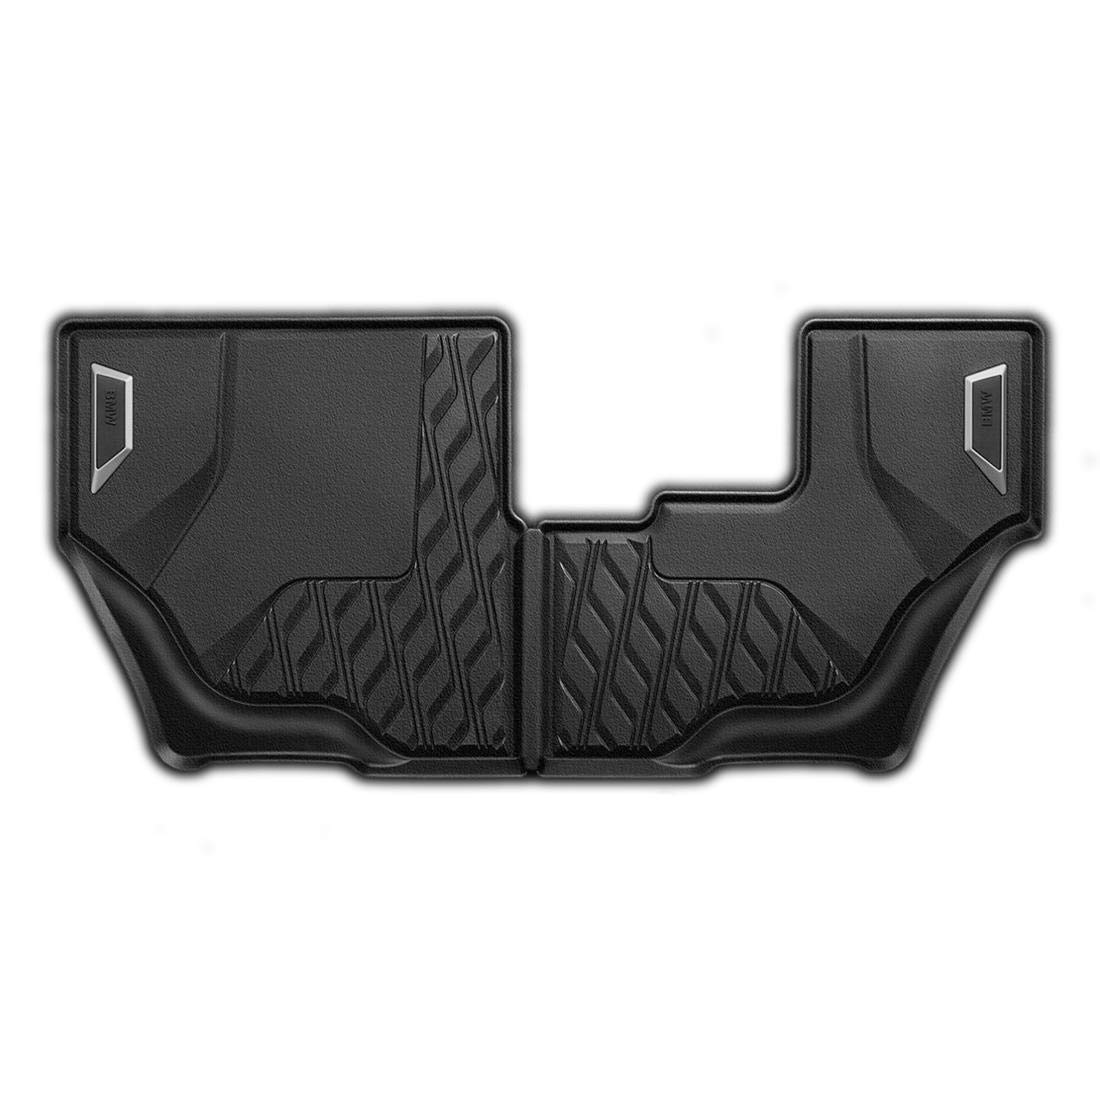 Picture Of Floor Mats For X7 Bench Seats And Captain